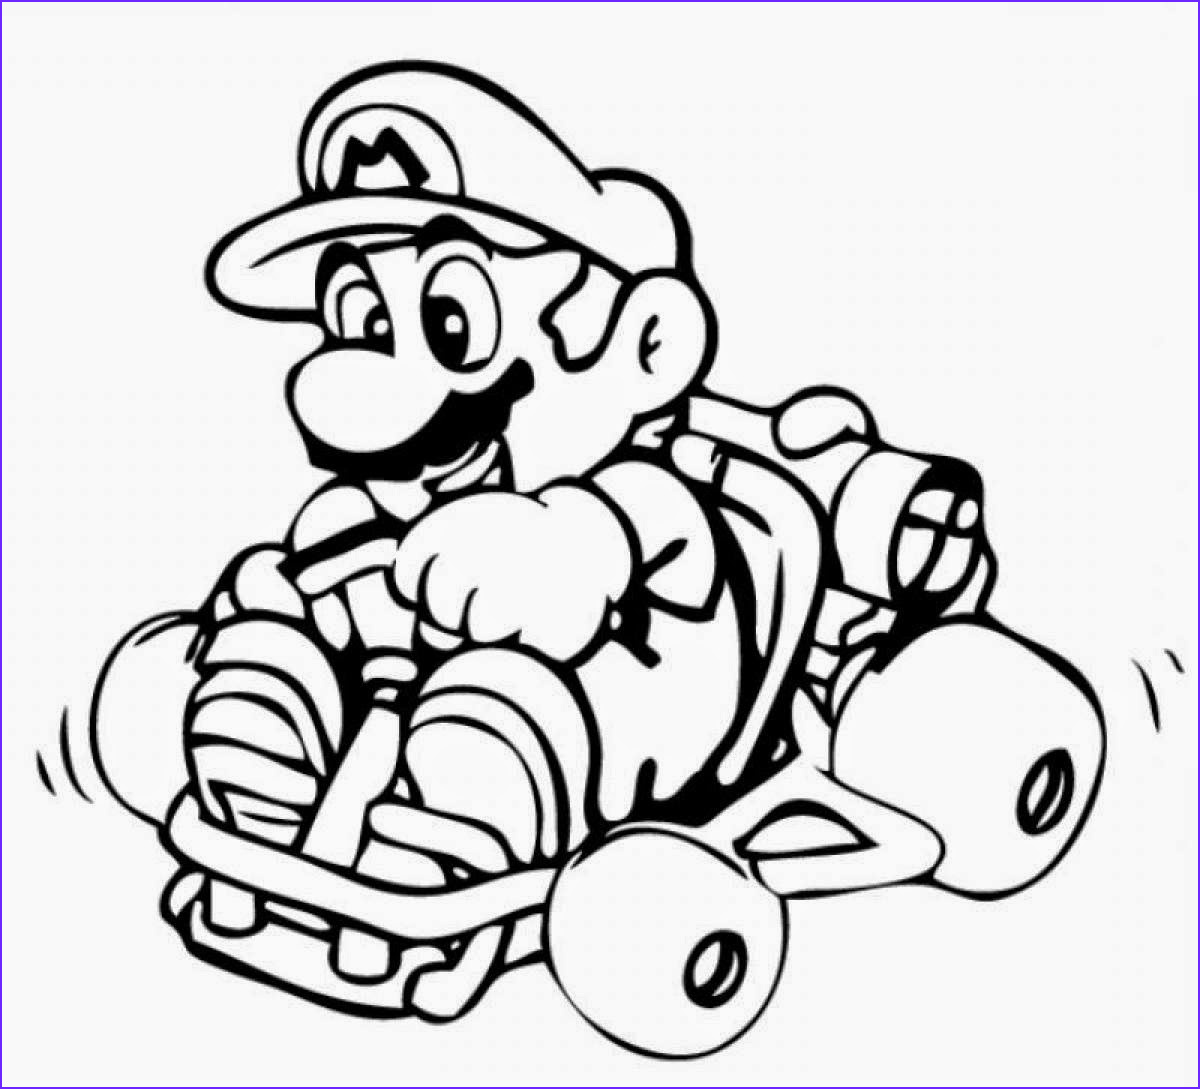 Mario Coloring Pages Cool Photos Coloring Pages Mario Coloring Pages Free and Printable